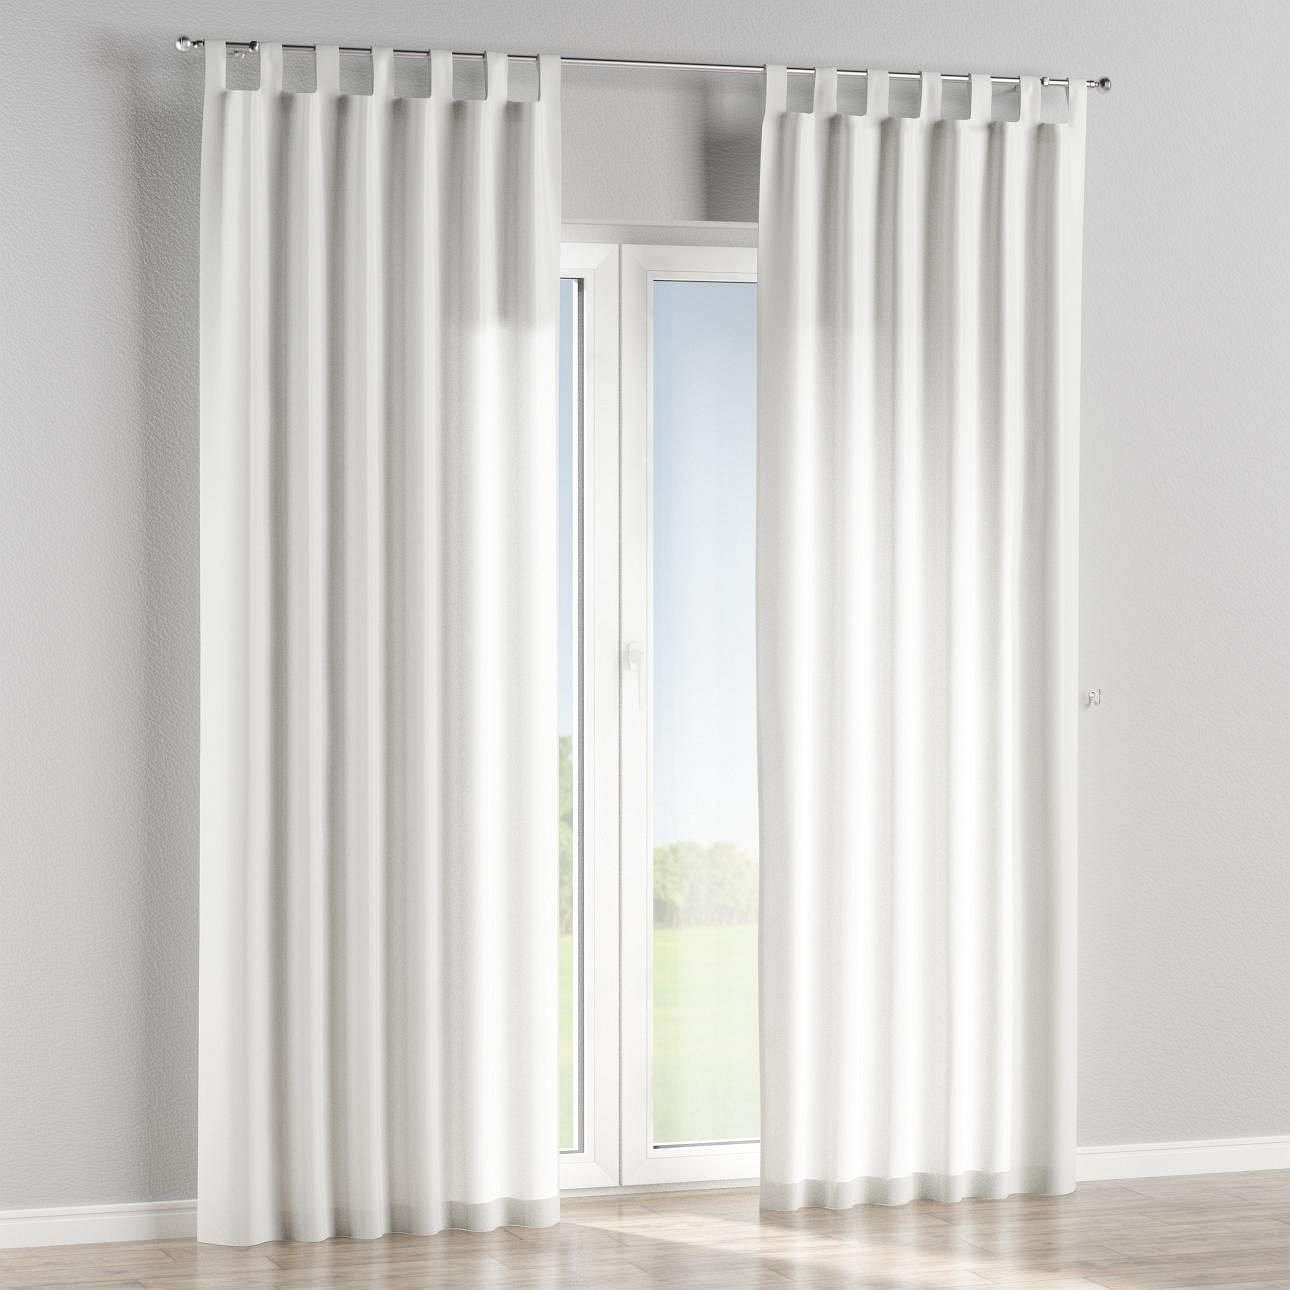 Tab top lined curtains in collection Rustica, fabric: 138-22